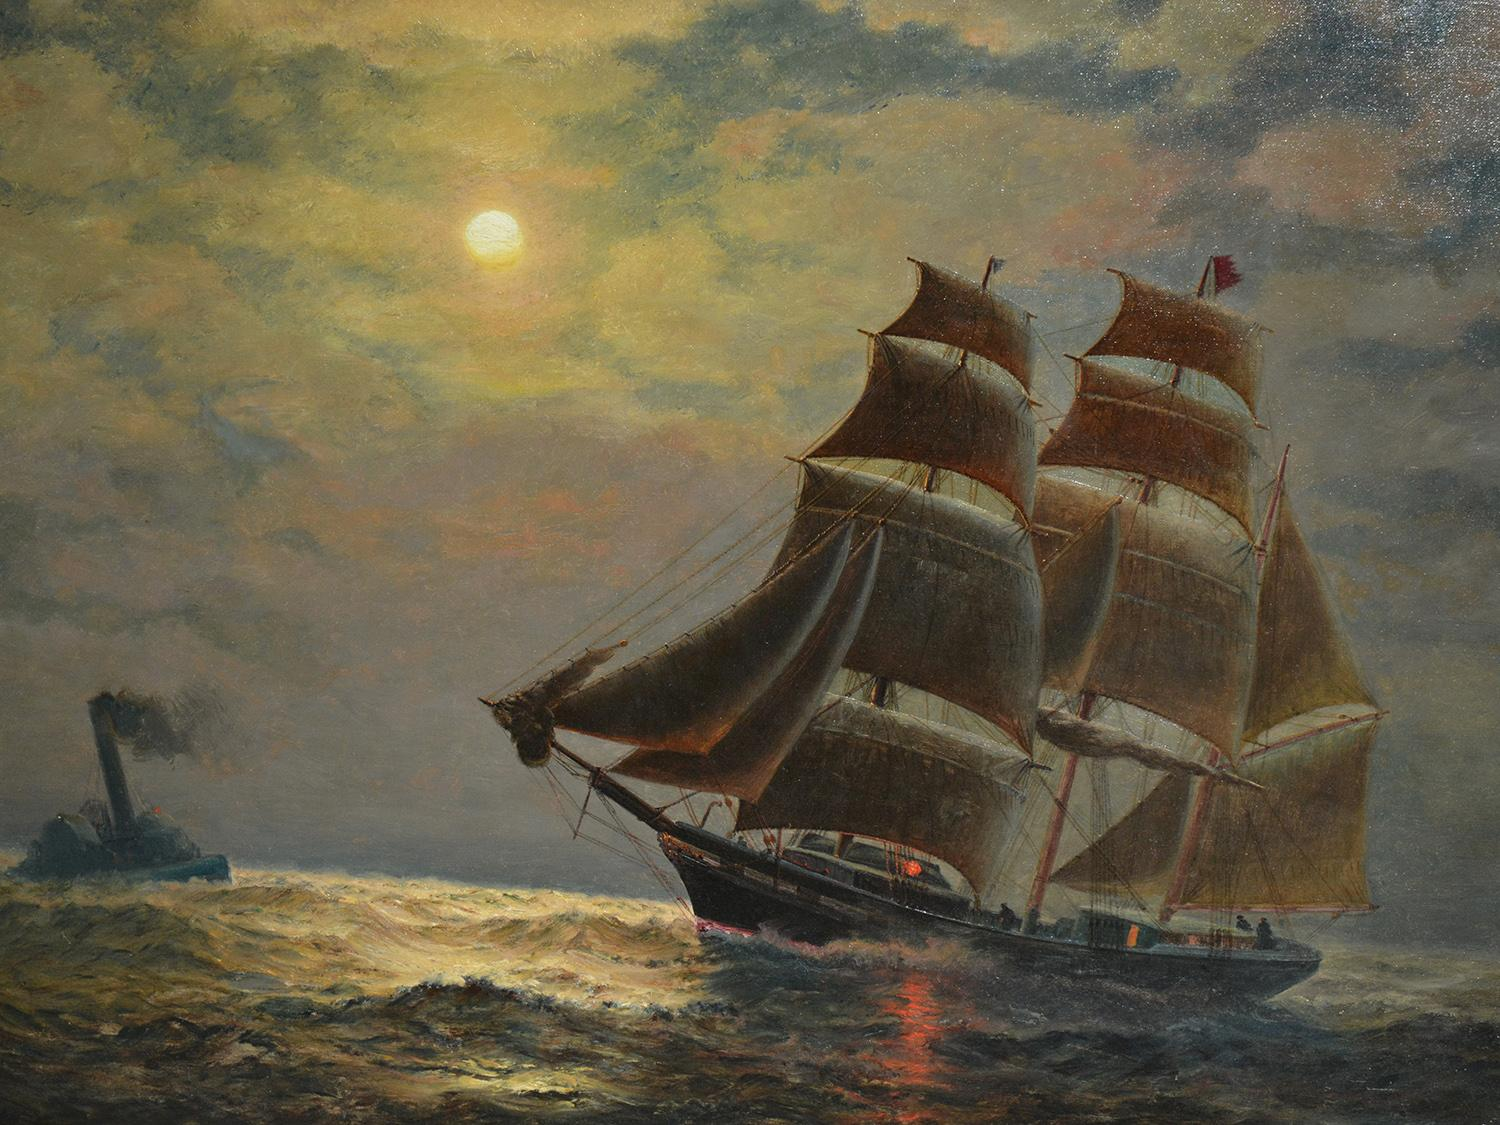 Painting by James Gale Tyler of a three-masted ship